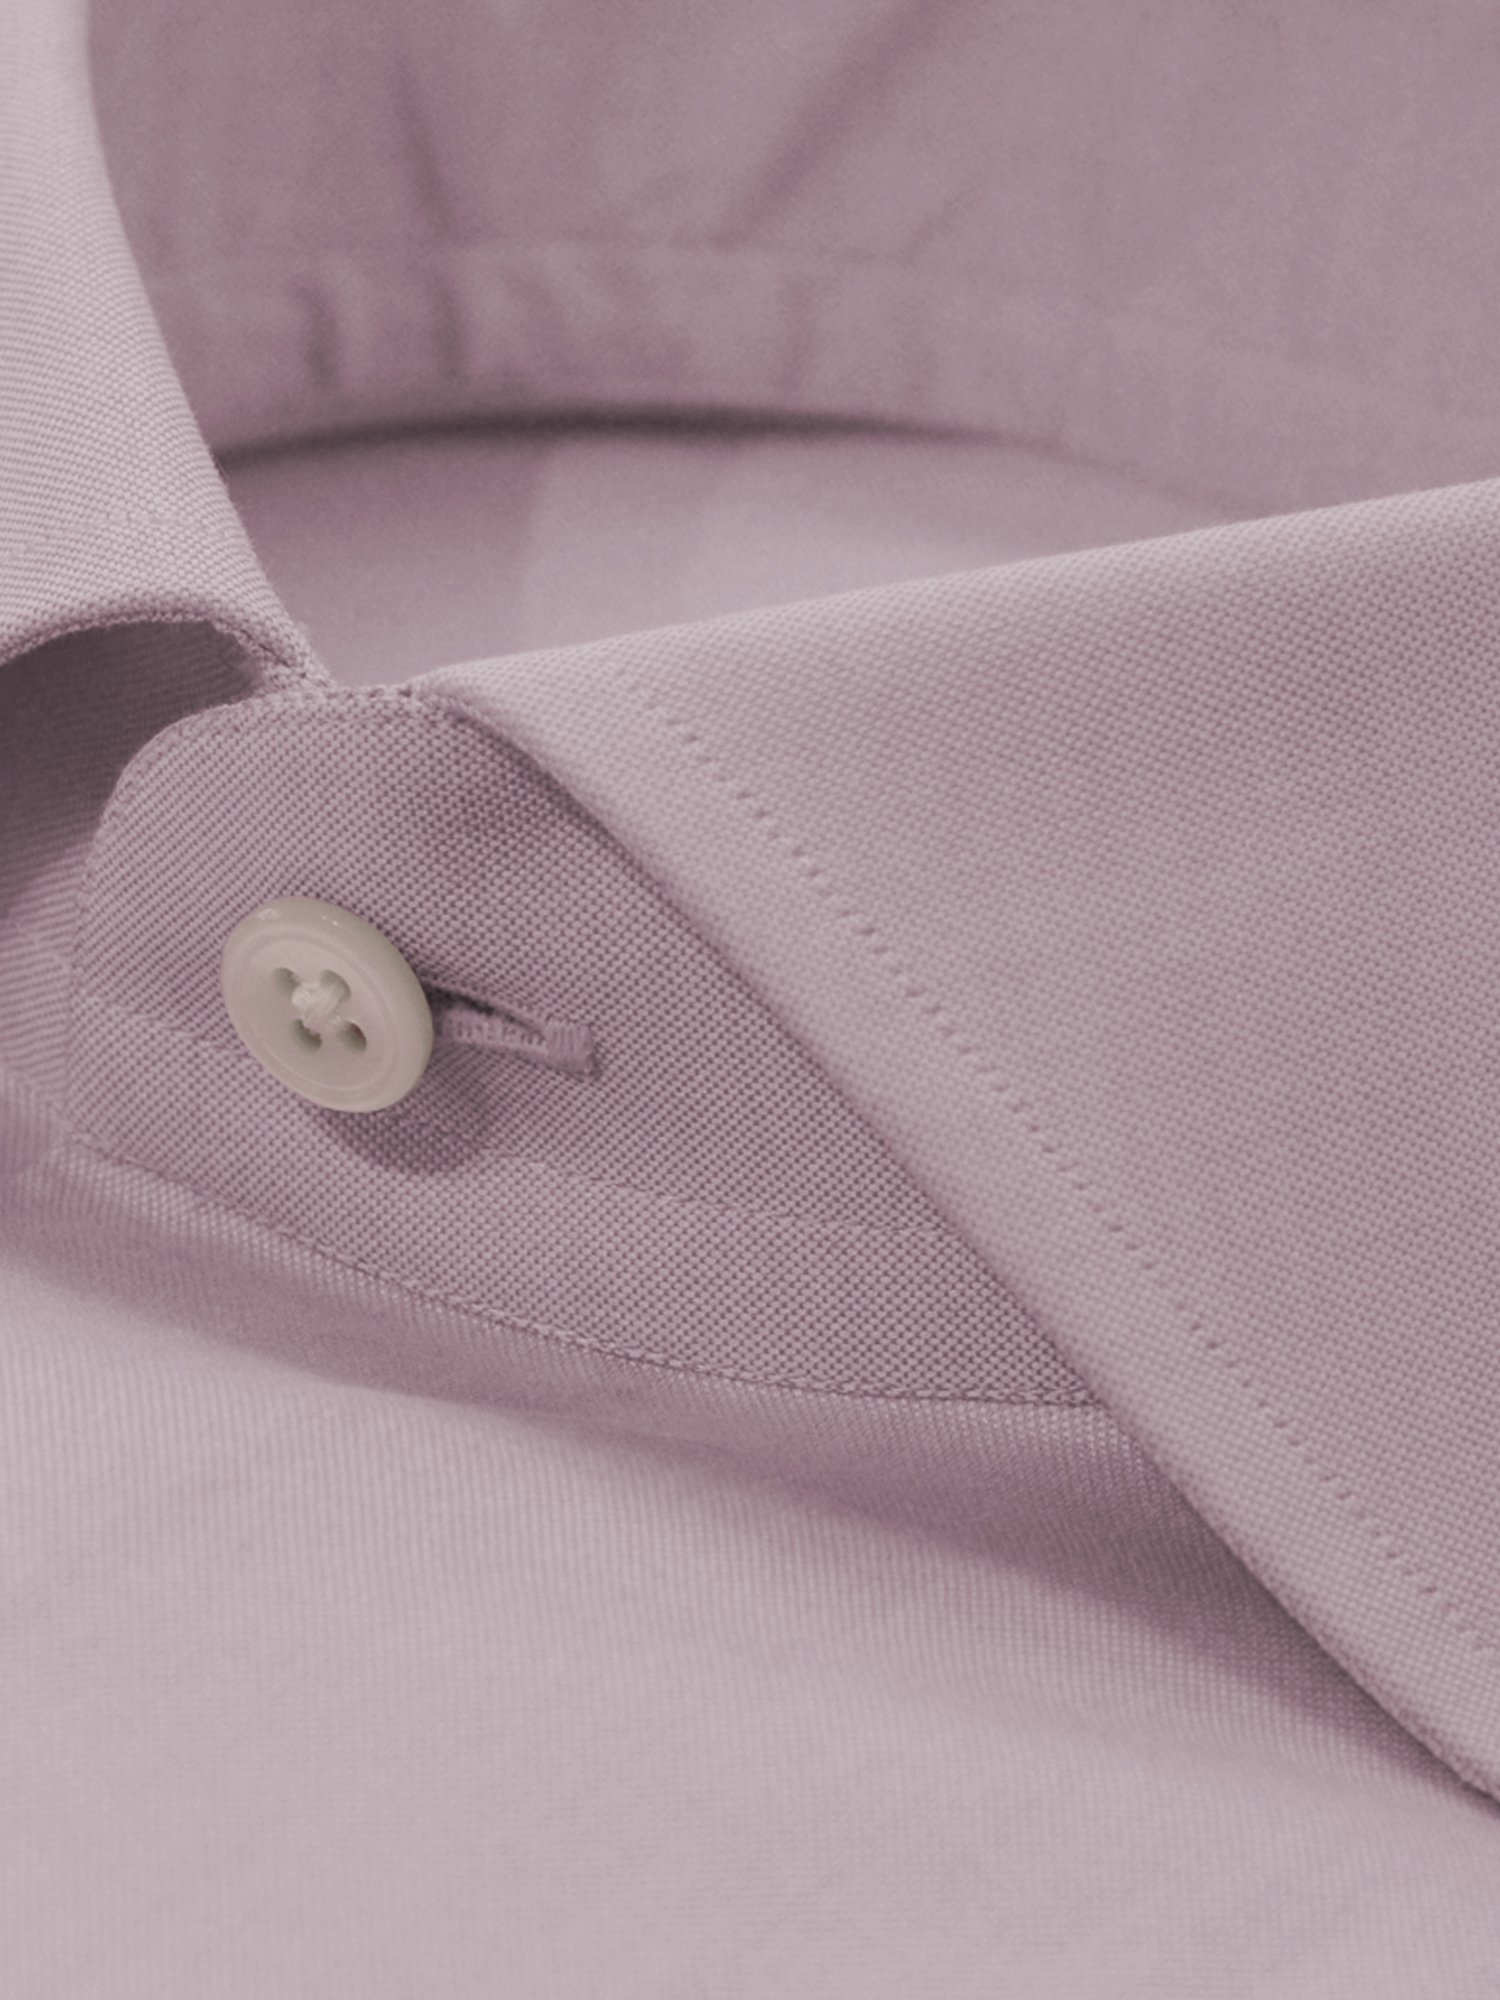 Bespoke shirt, pink shirt, luxury shirt, cotton shirt, Italian cotton shirt, bespoke shirt collar, Australian mother of pearl buttons, single needle shirt, hand made shirt